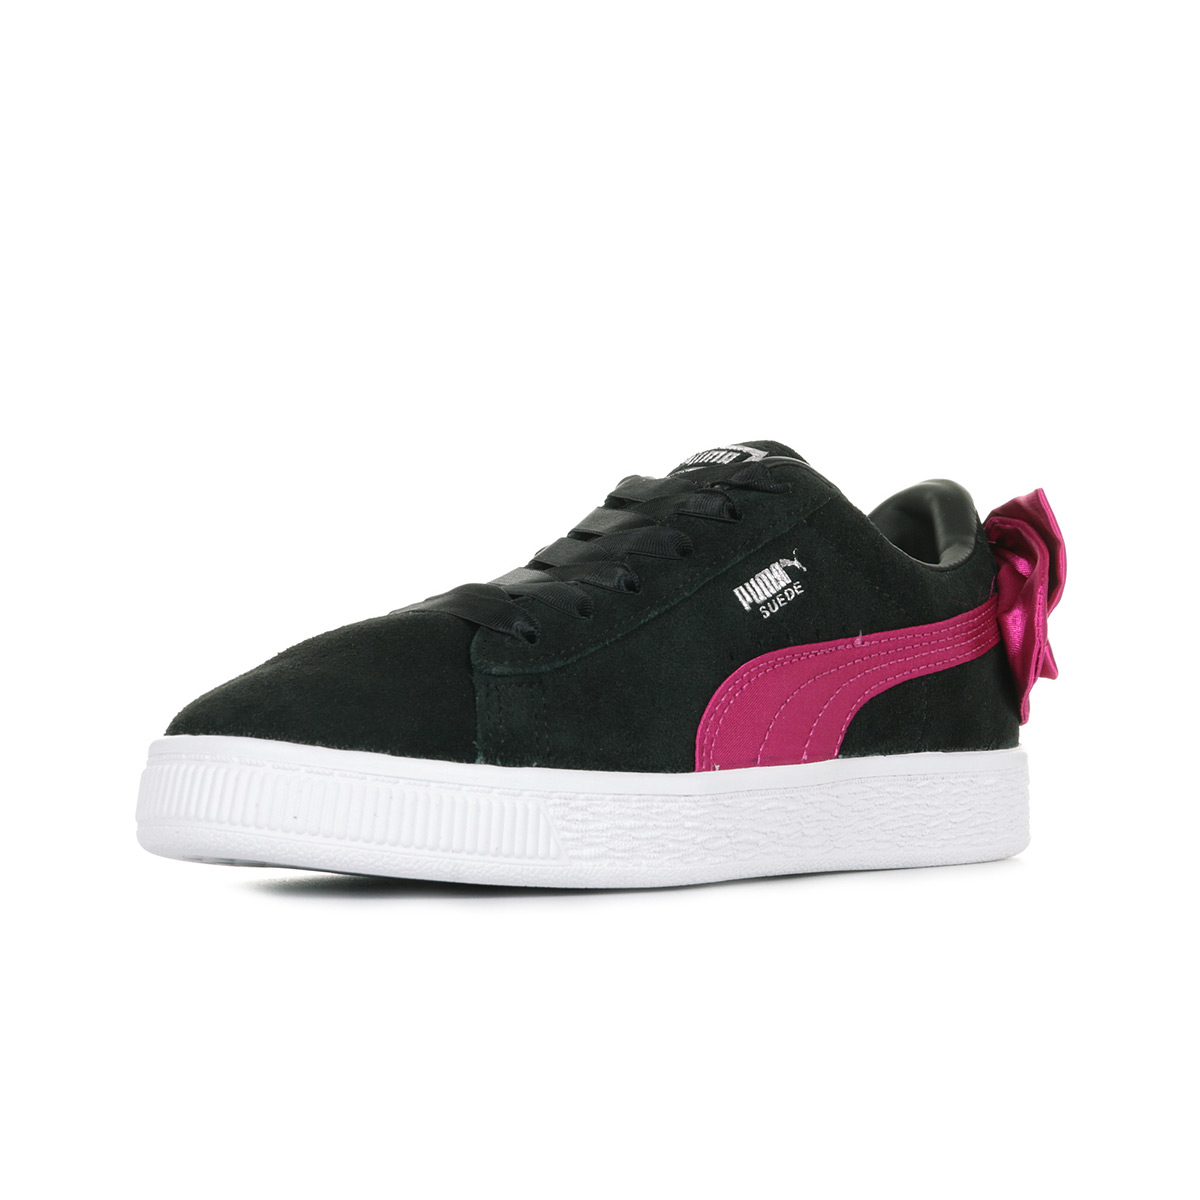 Puma Suede Bow AC PS 36731804, Baskets mode fille 0f26e680afb9